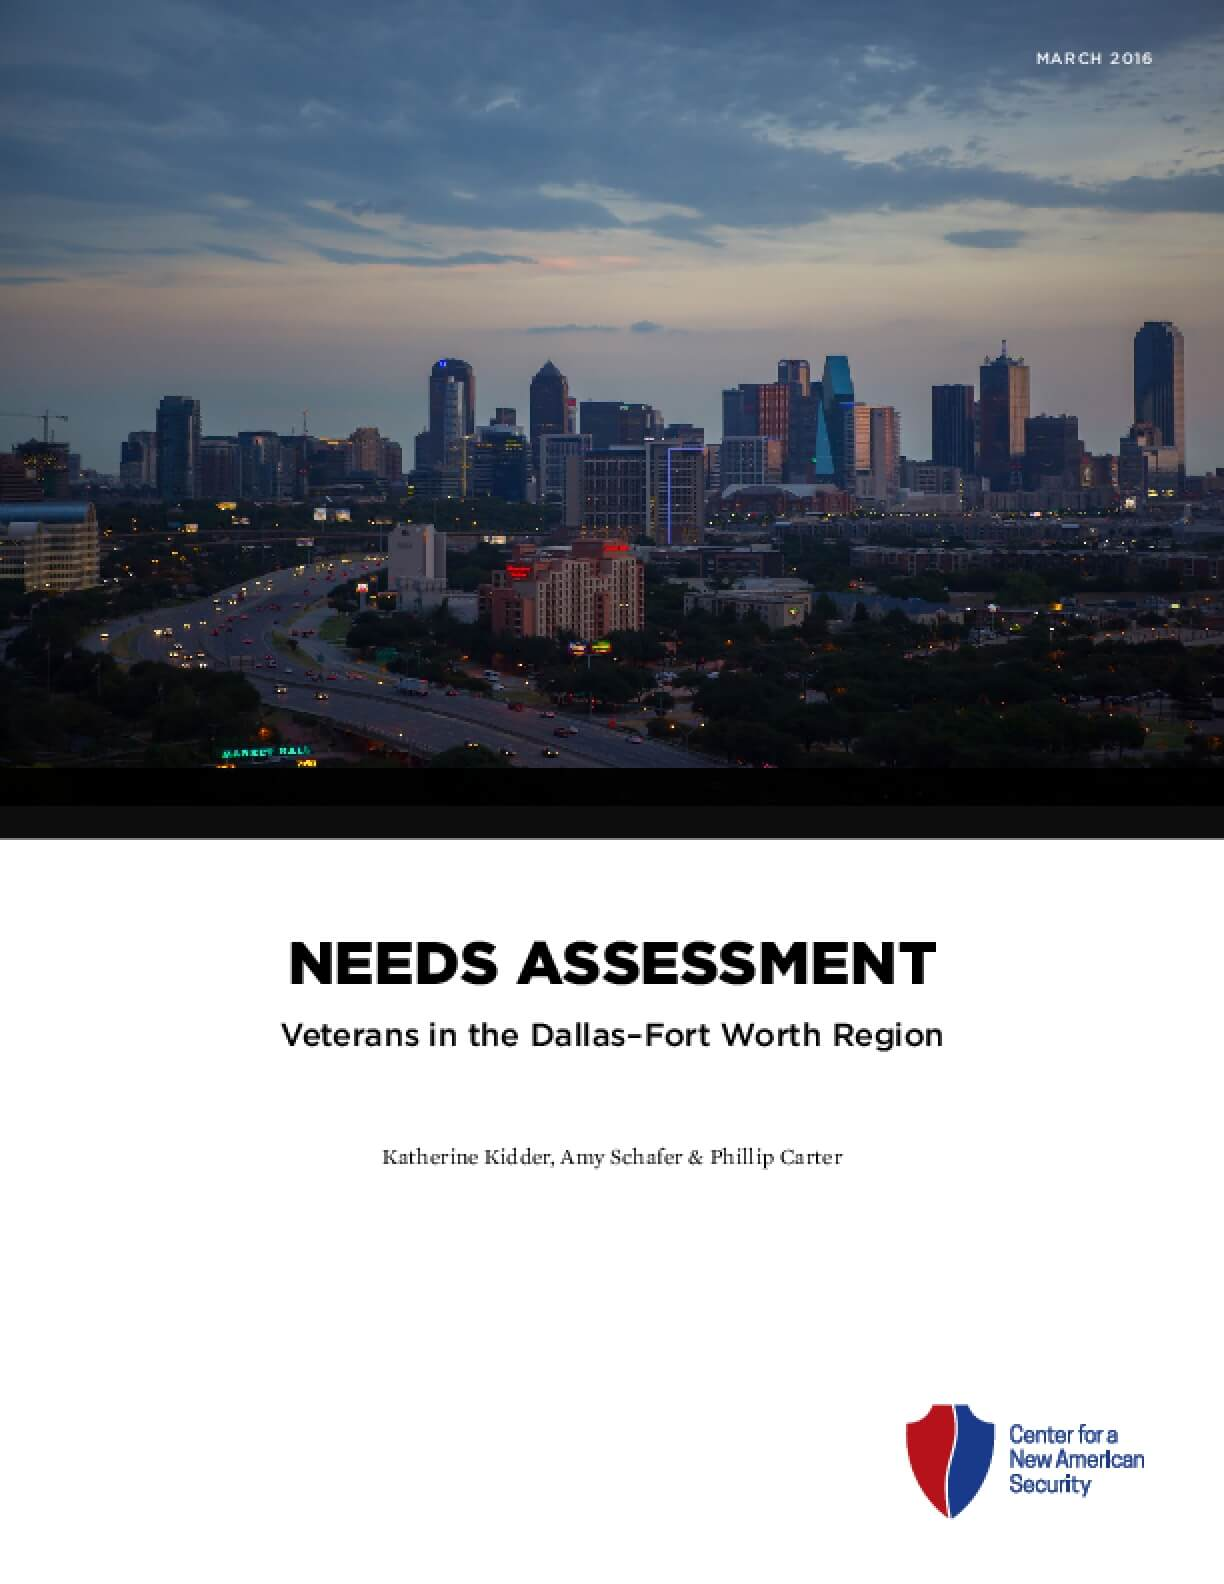 Needs Assessment: Veterans in the Dallas-Fort Worth Region